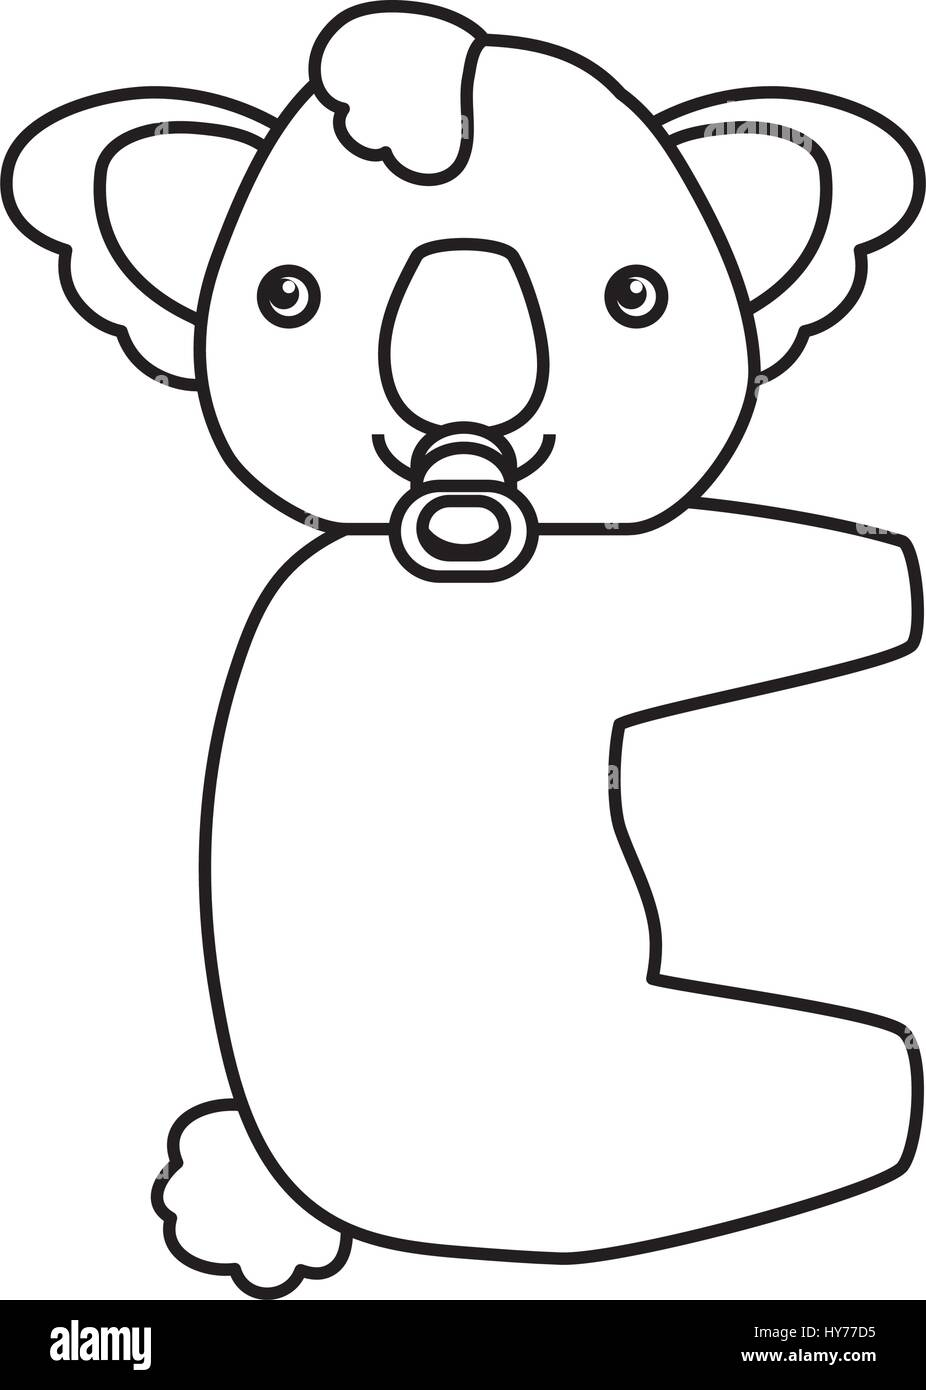 baby koala cartoon animal vector icon illustration stock vector